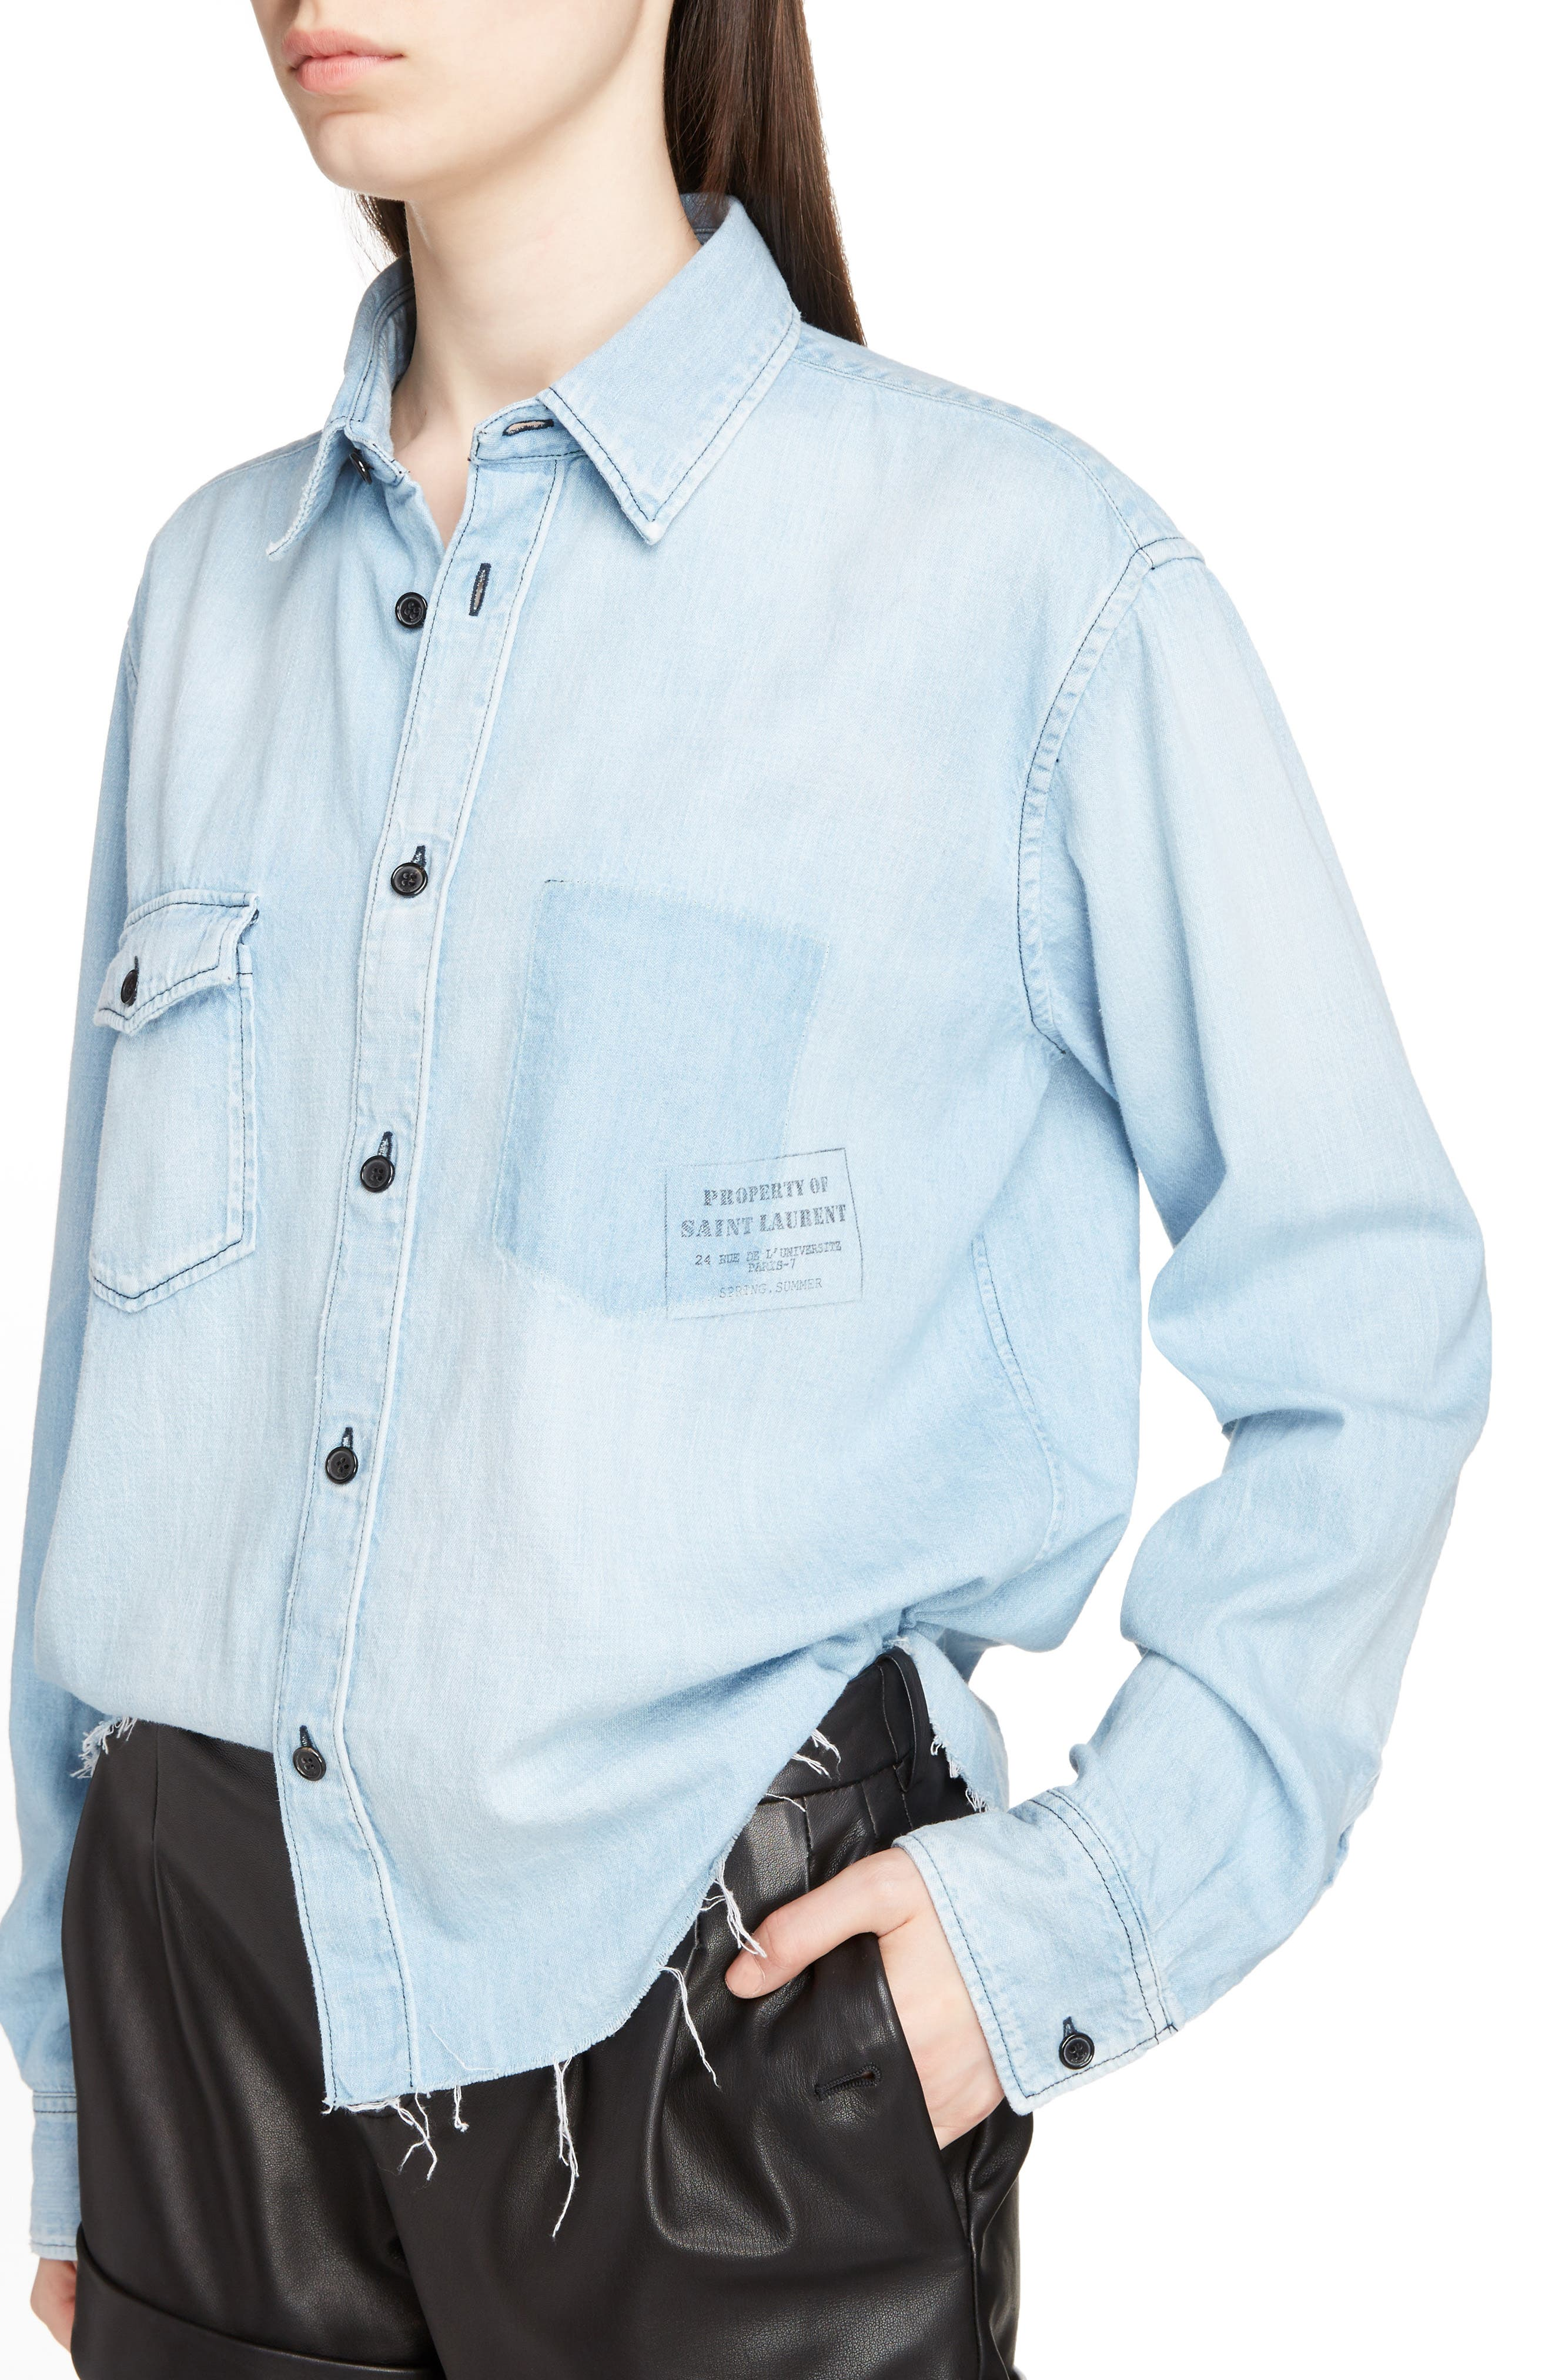 Logo Stamp Denim Shirt,                             Alternate thumbnail 4, color,                             410